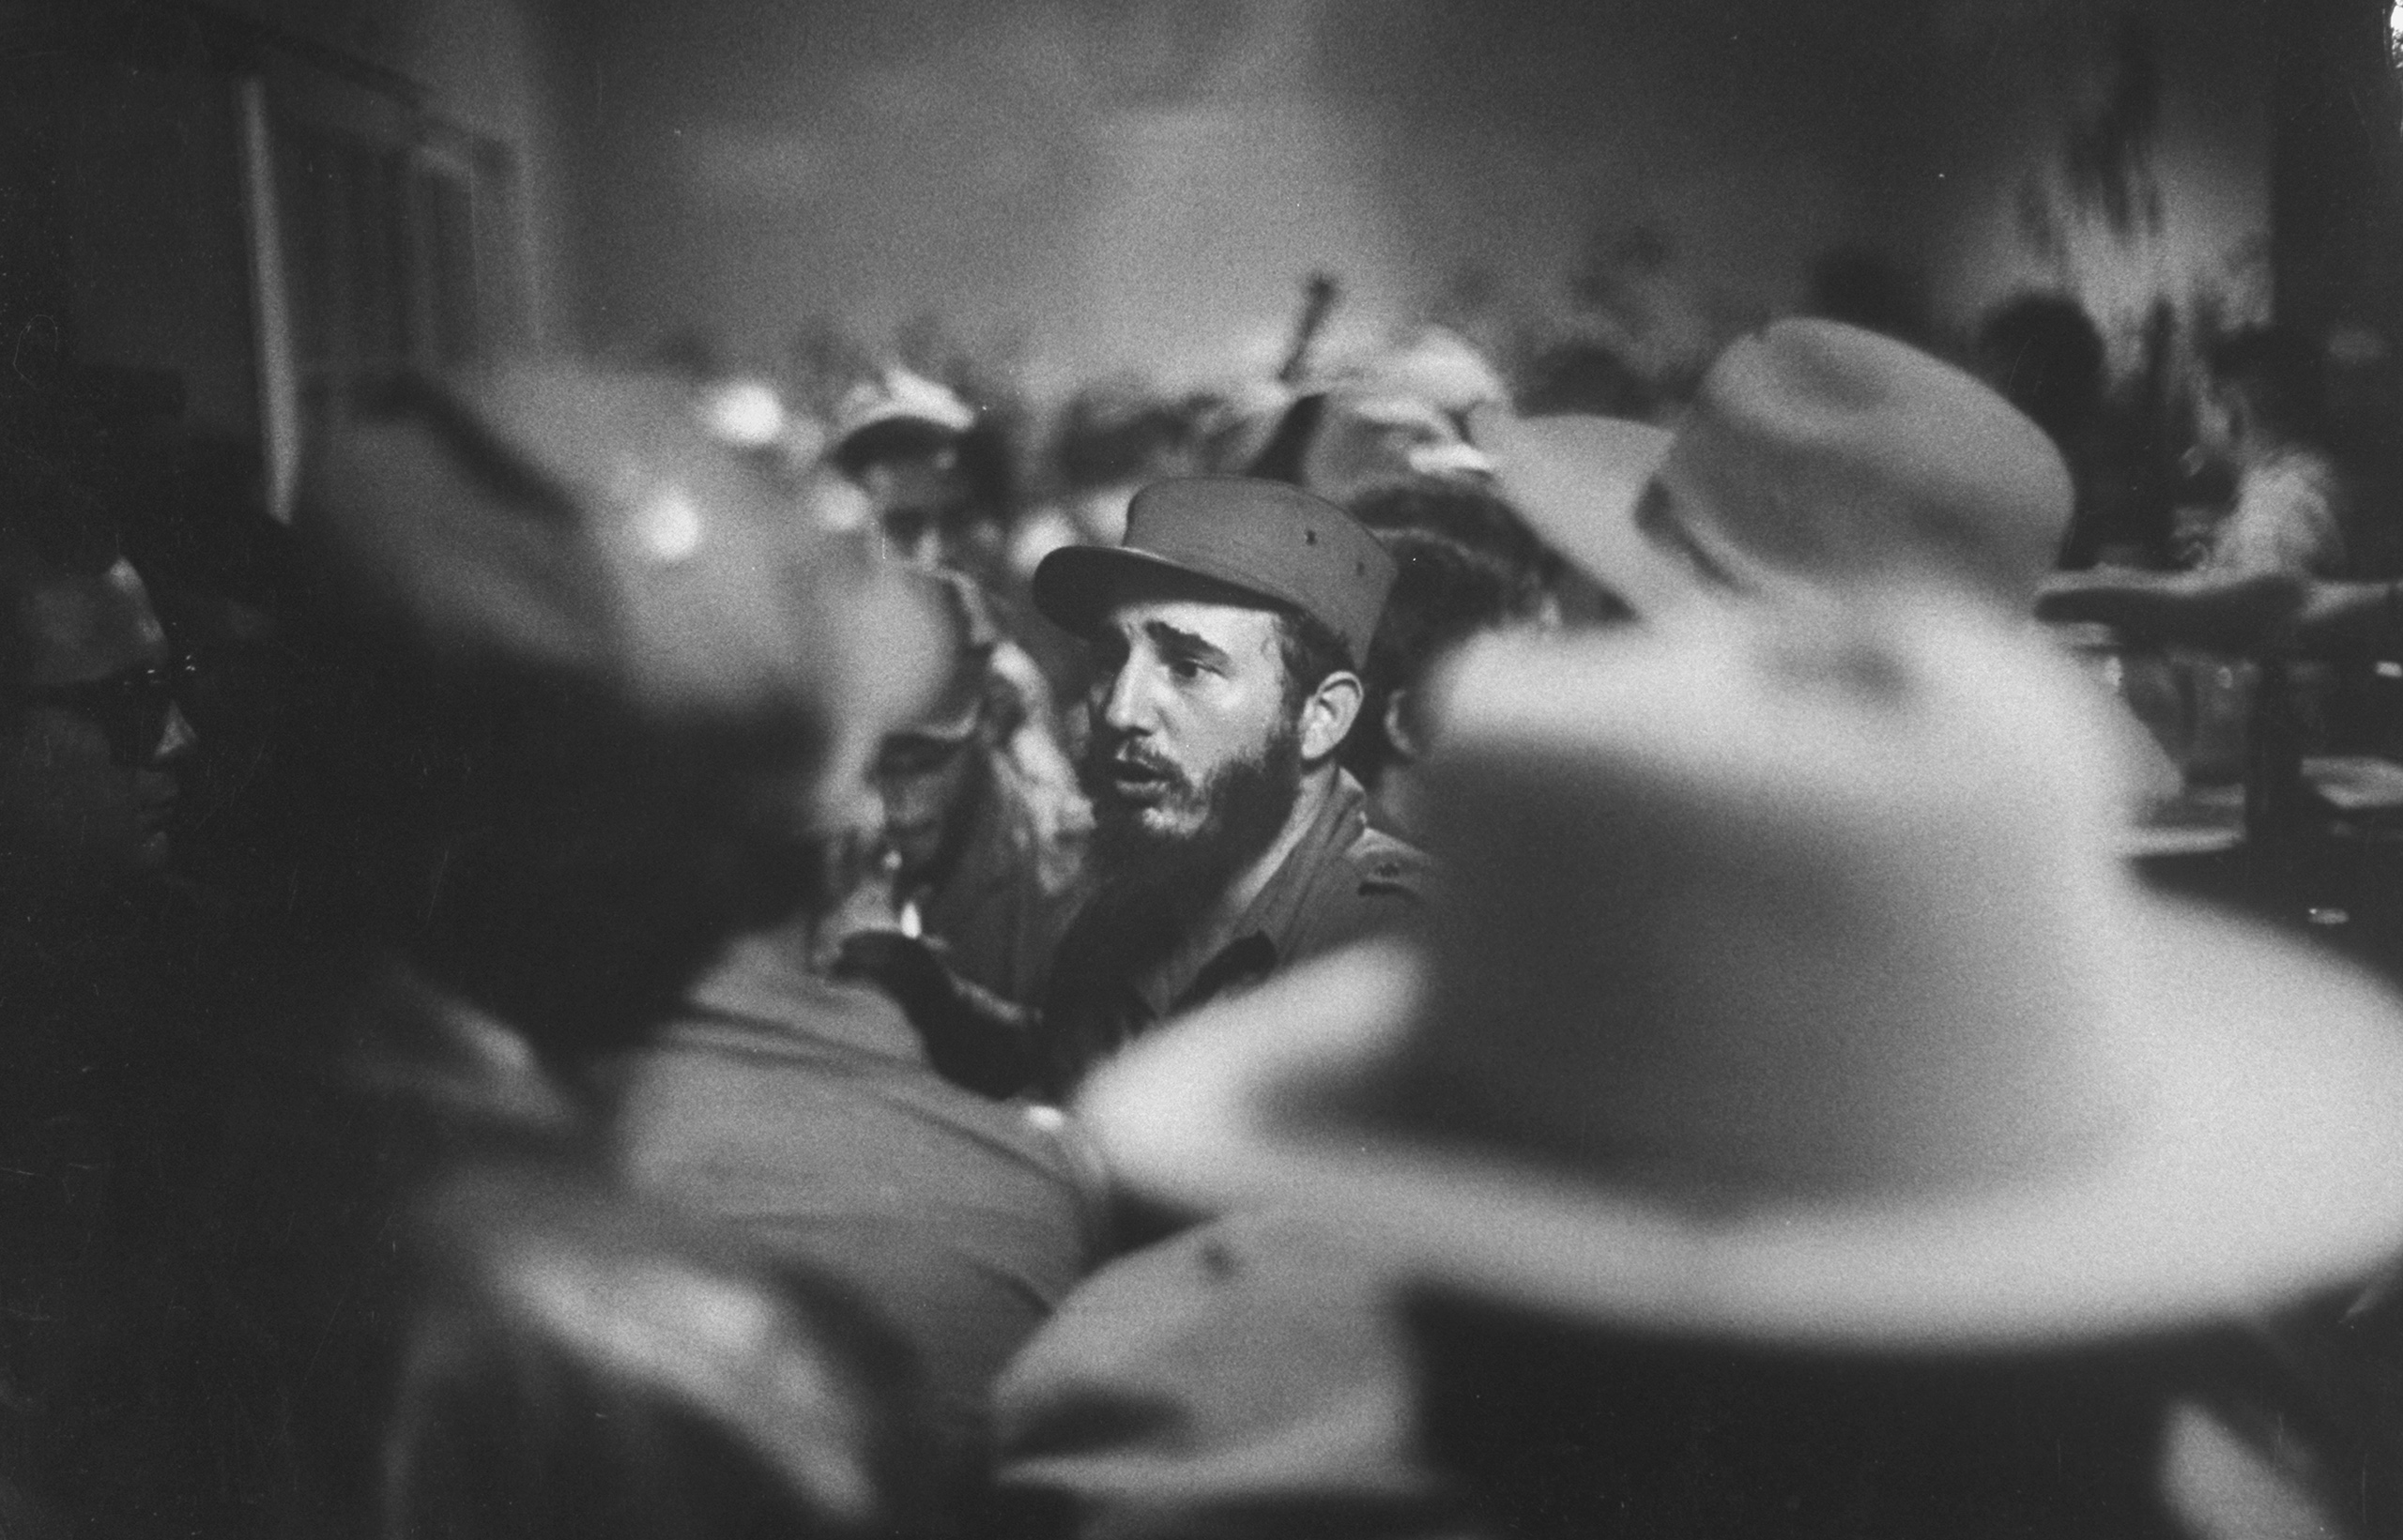 Rebel leader Fidel Castro being cheered by the crowds on his victorious march to Havana.